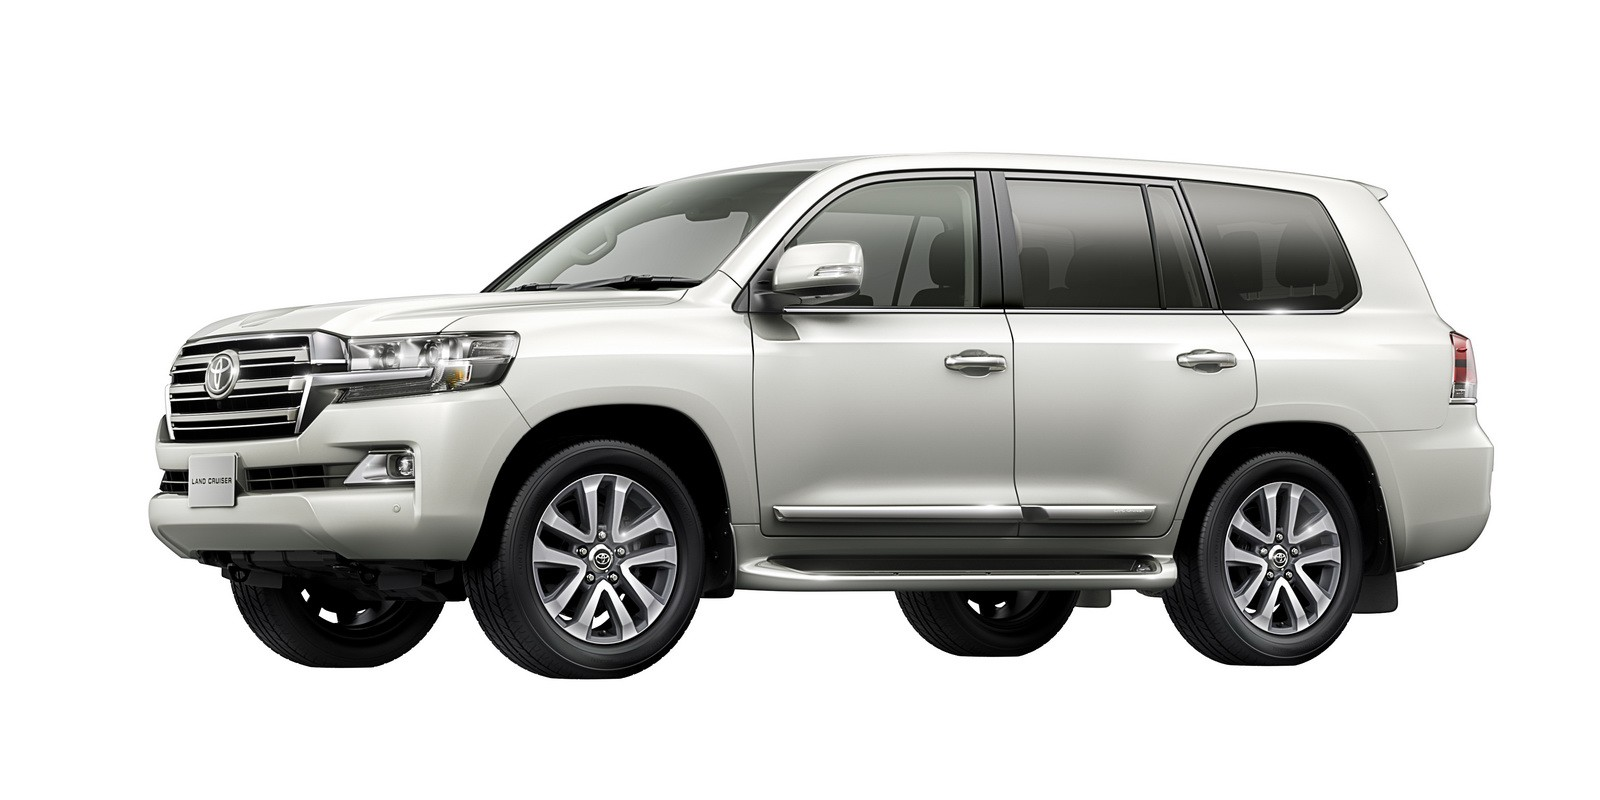 small resolution of toyota land cruiser 2019 exterior side view